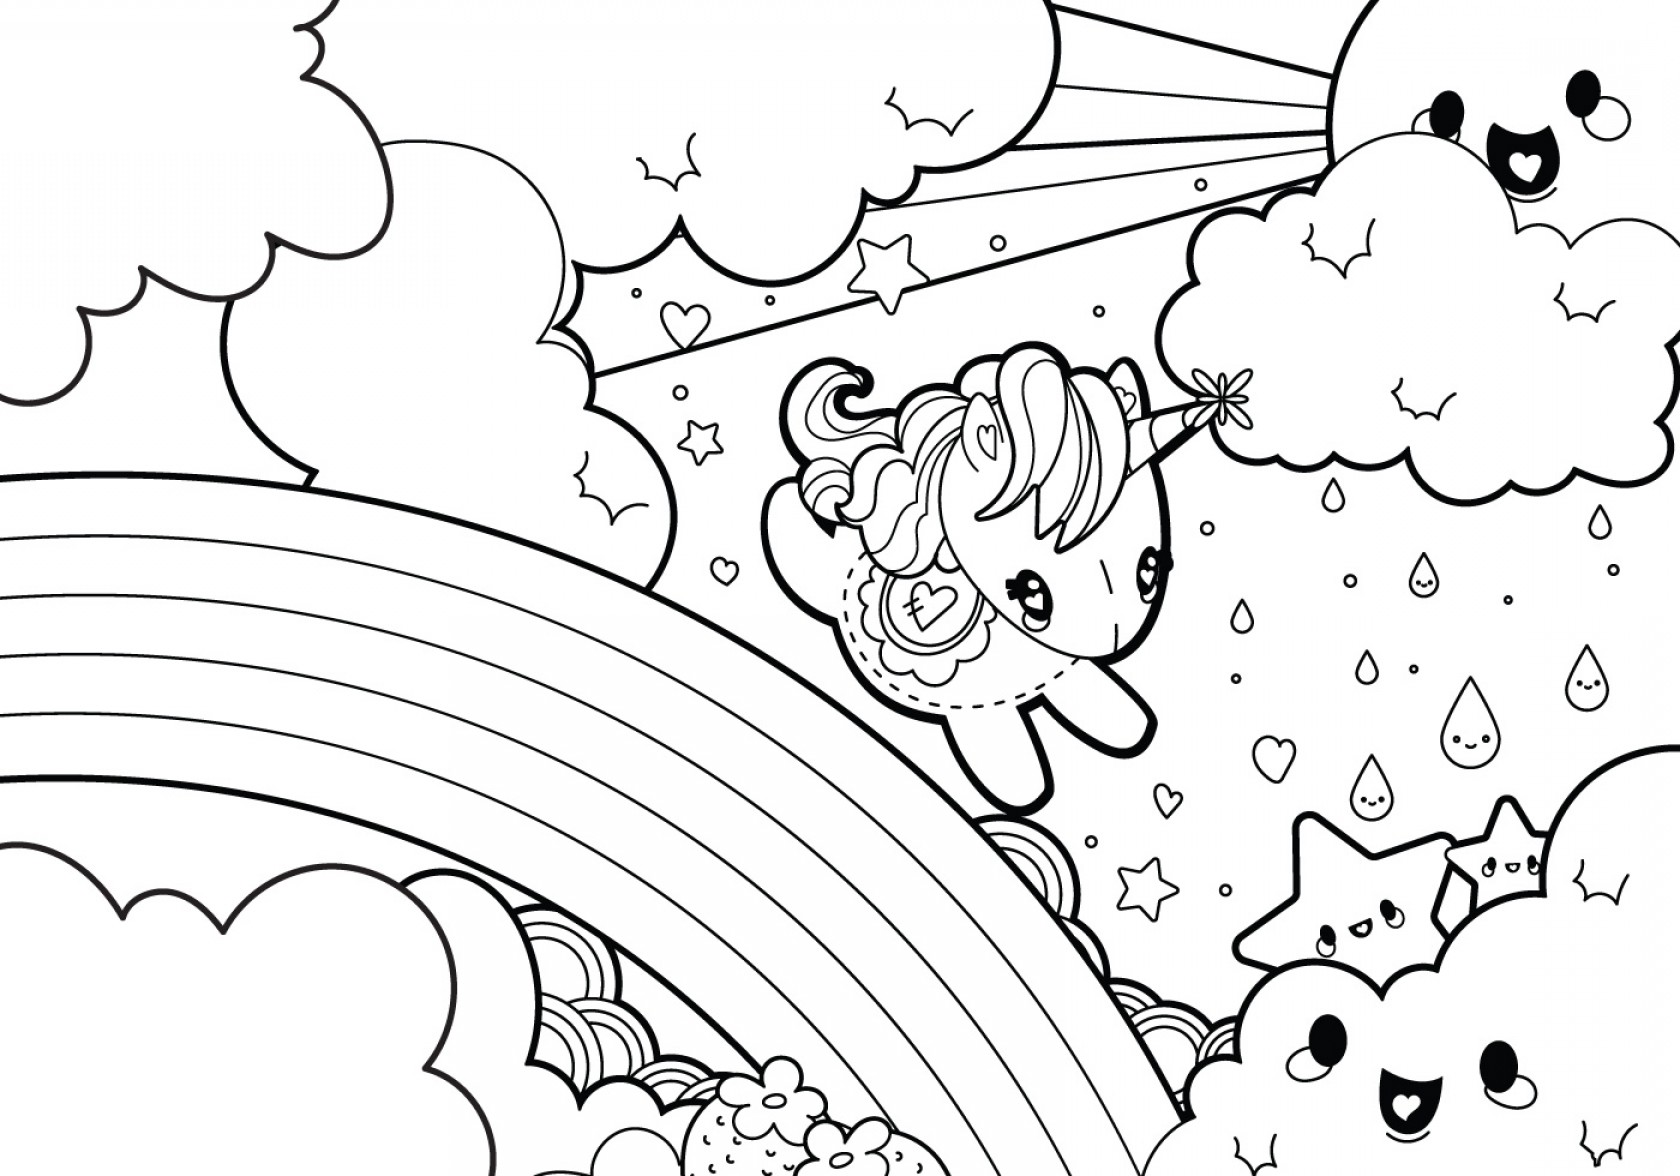 Vector Coloring Sheet: Rainy Rainbow Unicorn Scene Coloring Page